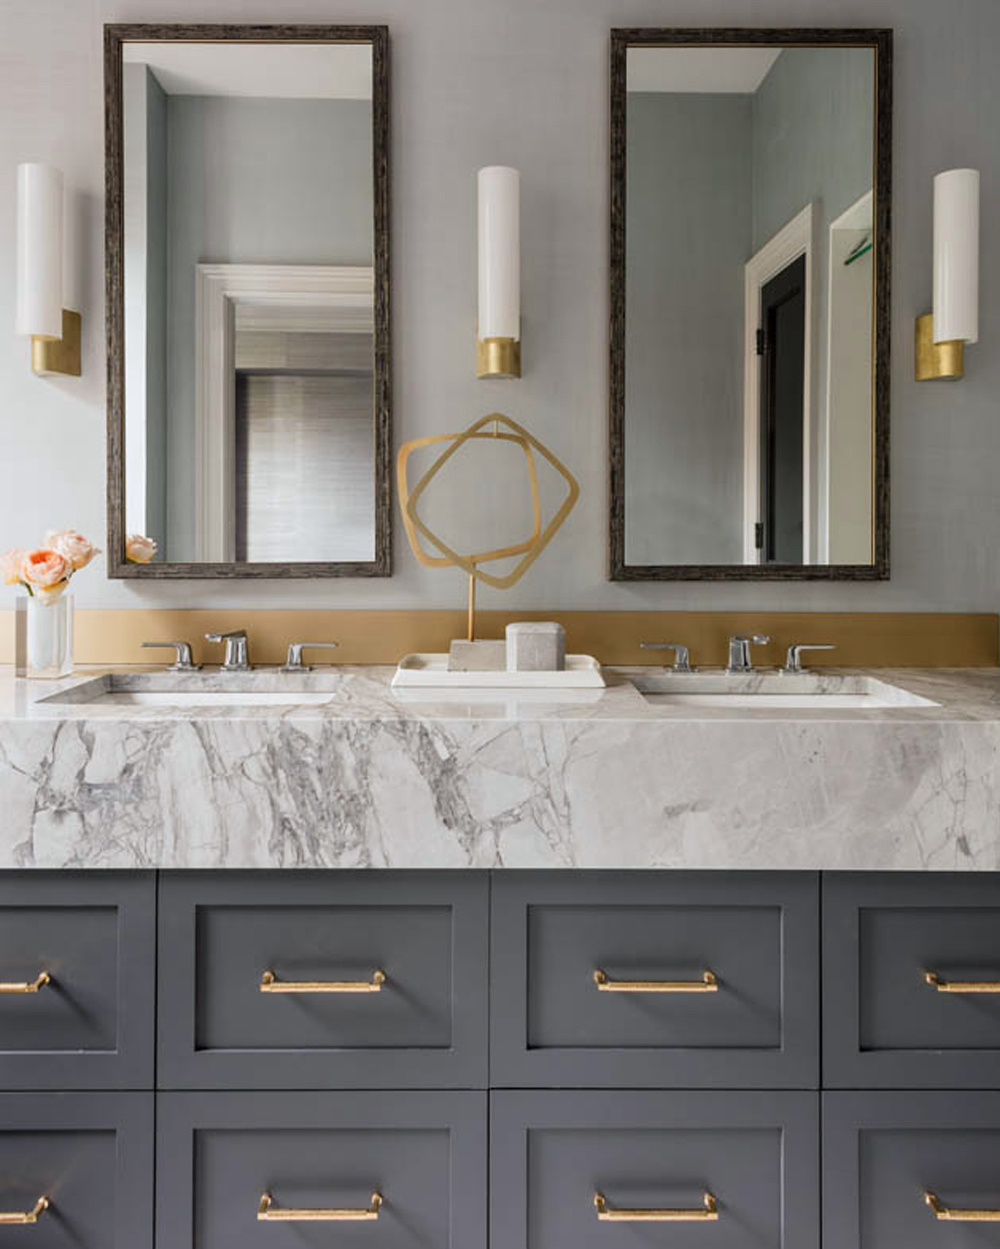 Bathroom renovation tips from First Sense || Lighting a bathroom